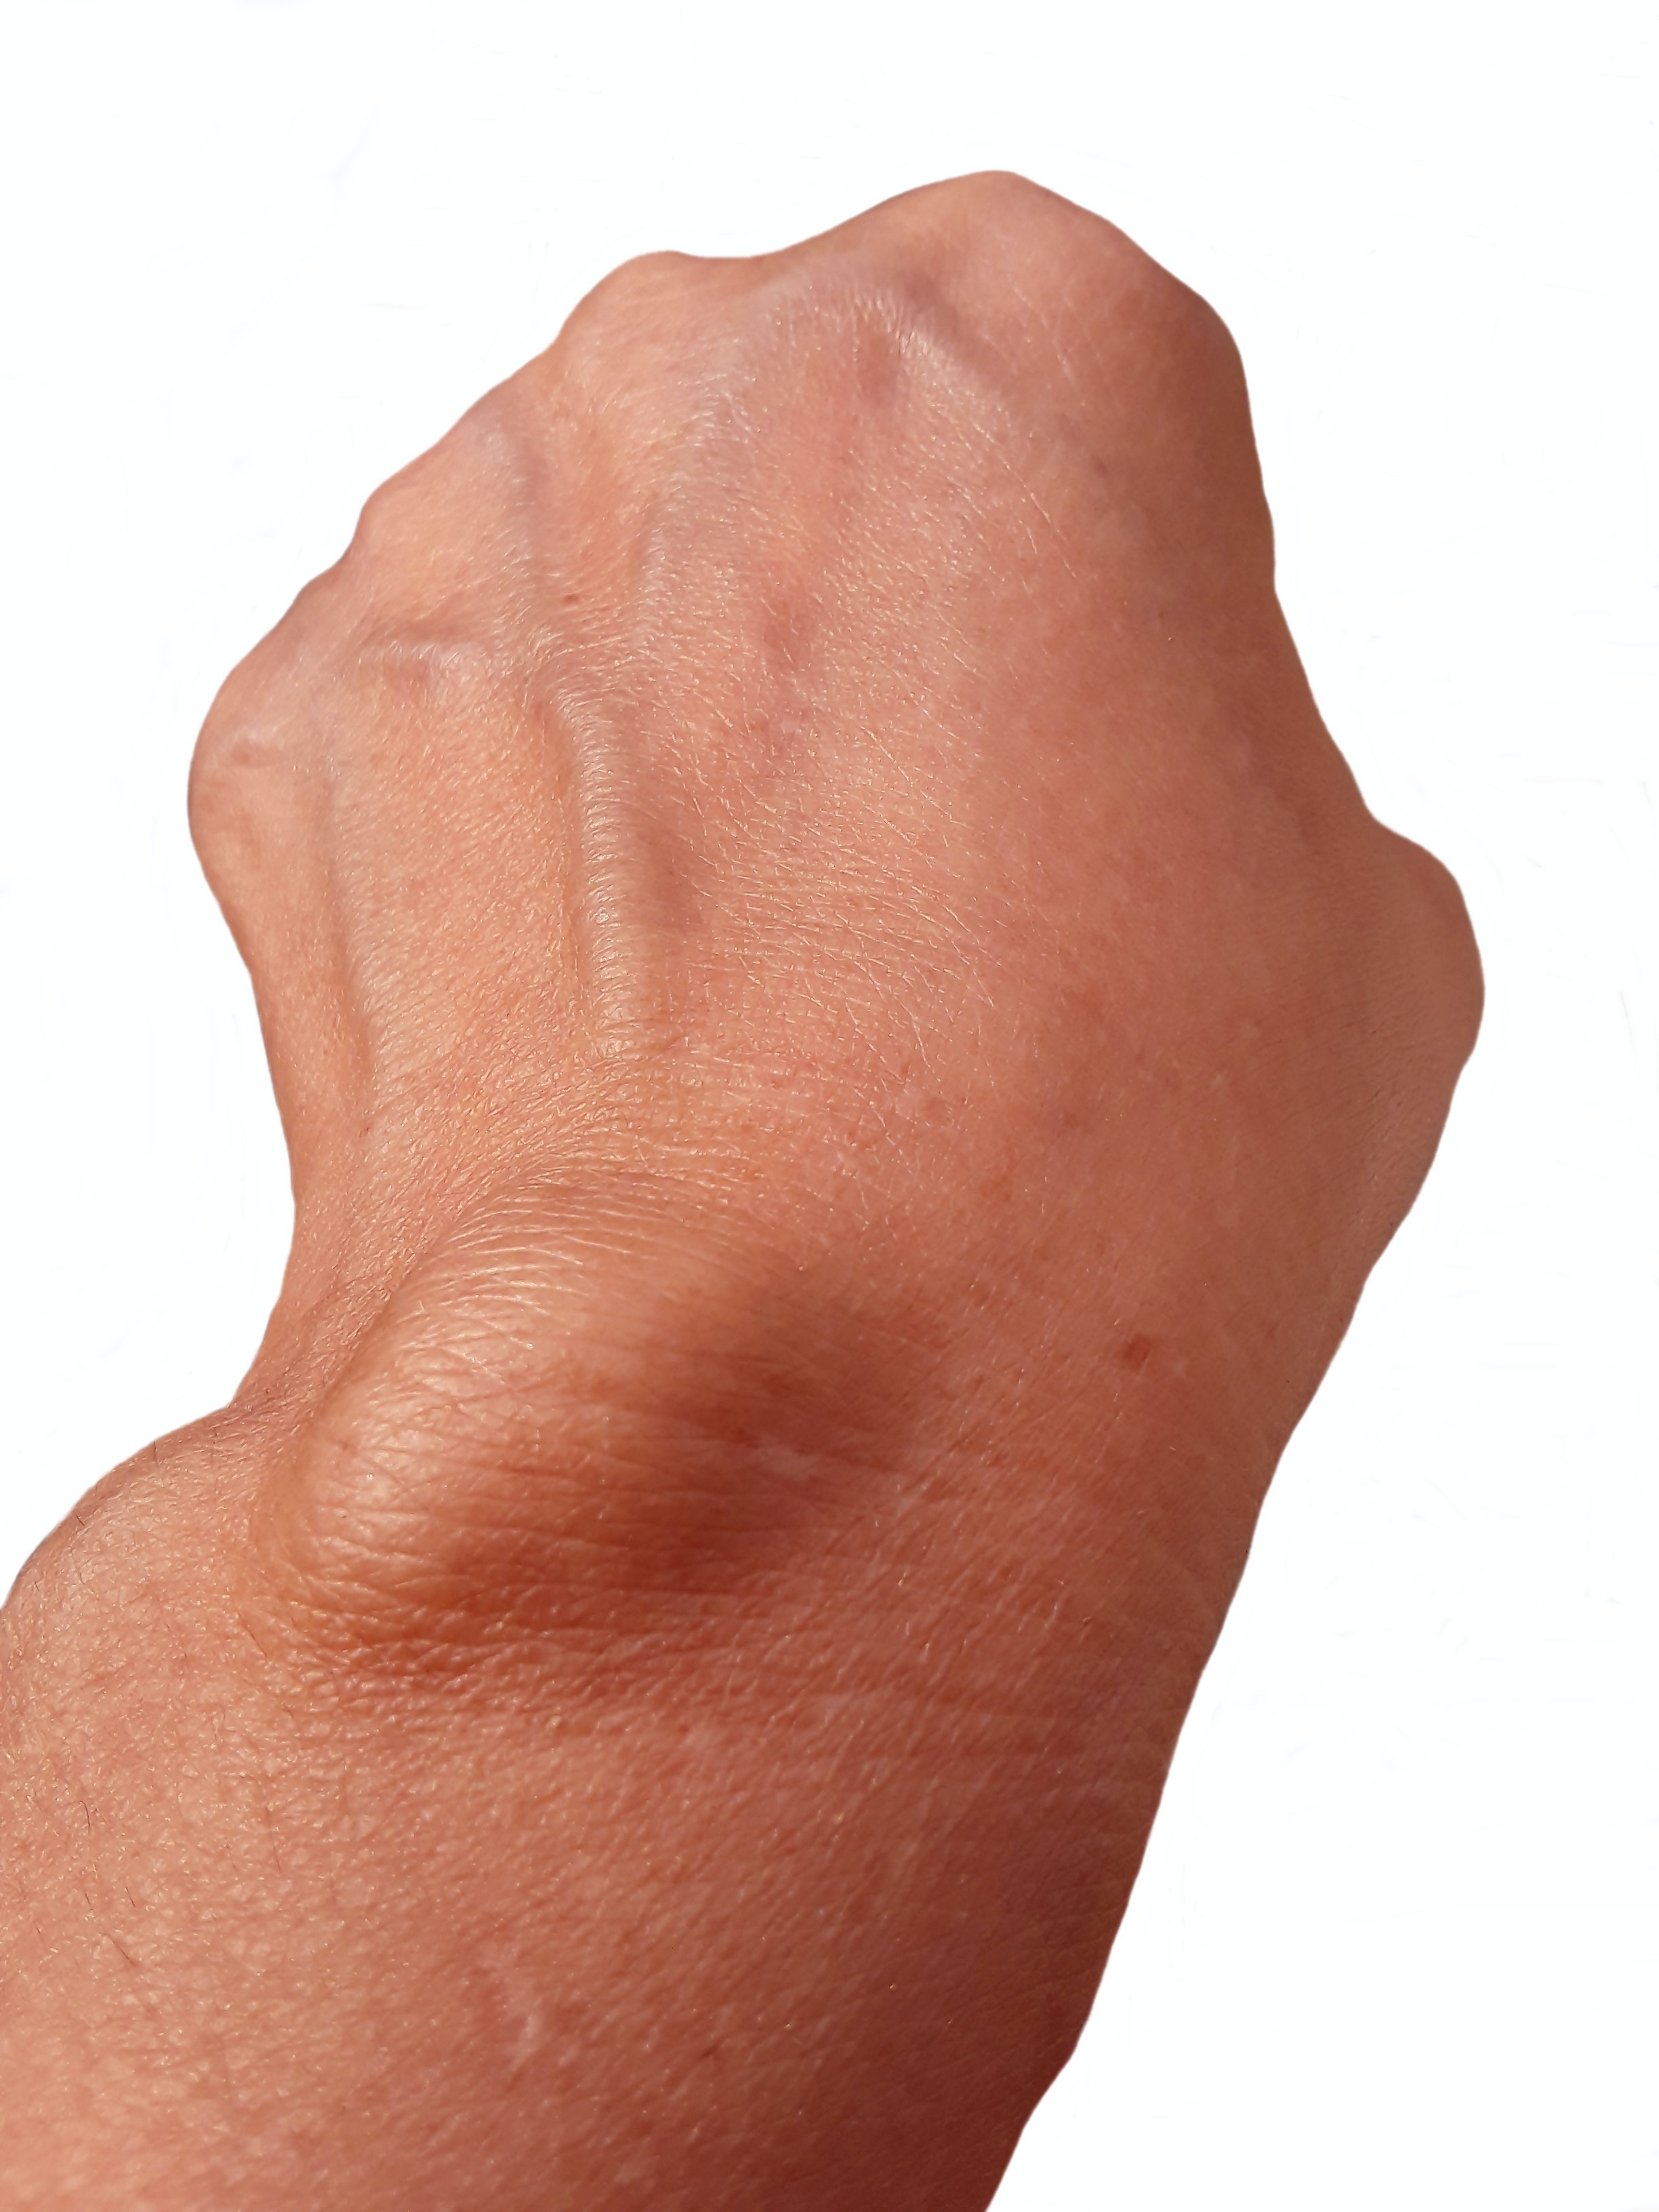 An image depicting a person suffering from painless forearm lump symptoms